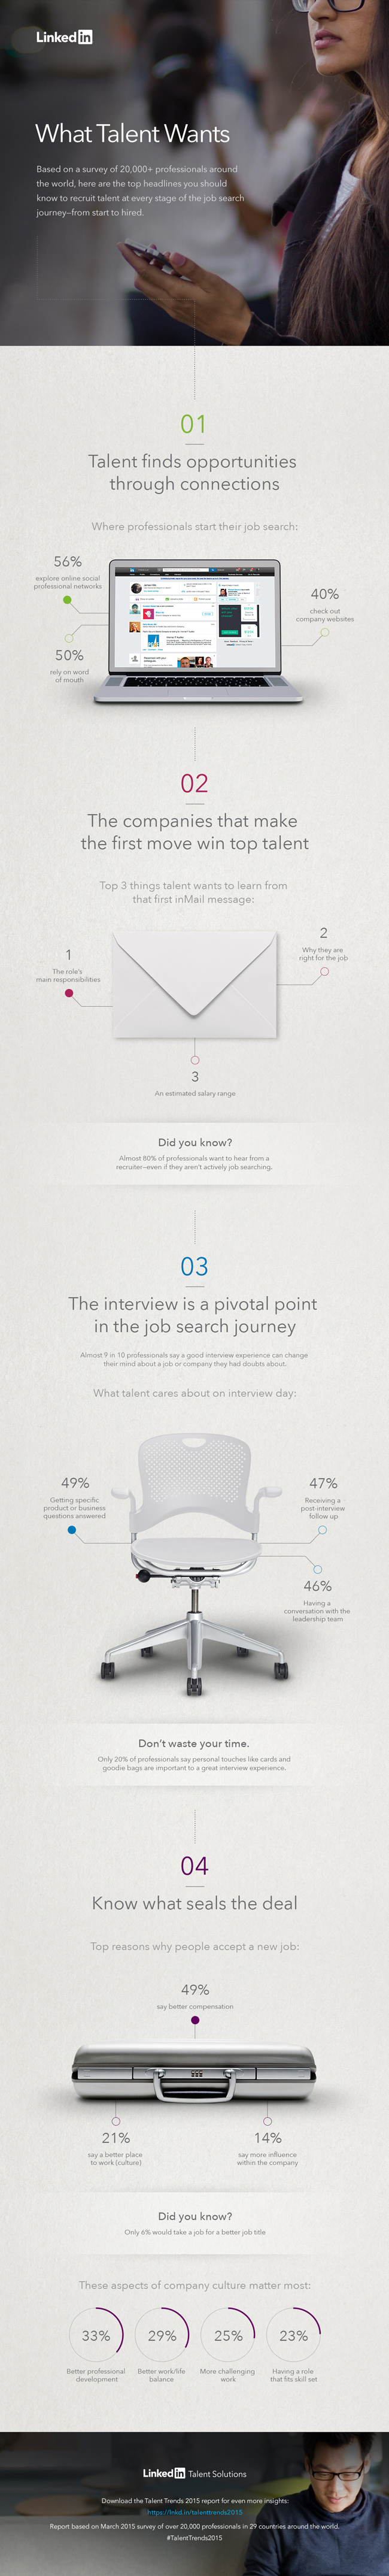 Global_Talent_Trends_Infographic_FinalHandoff_2